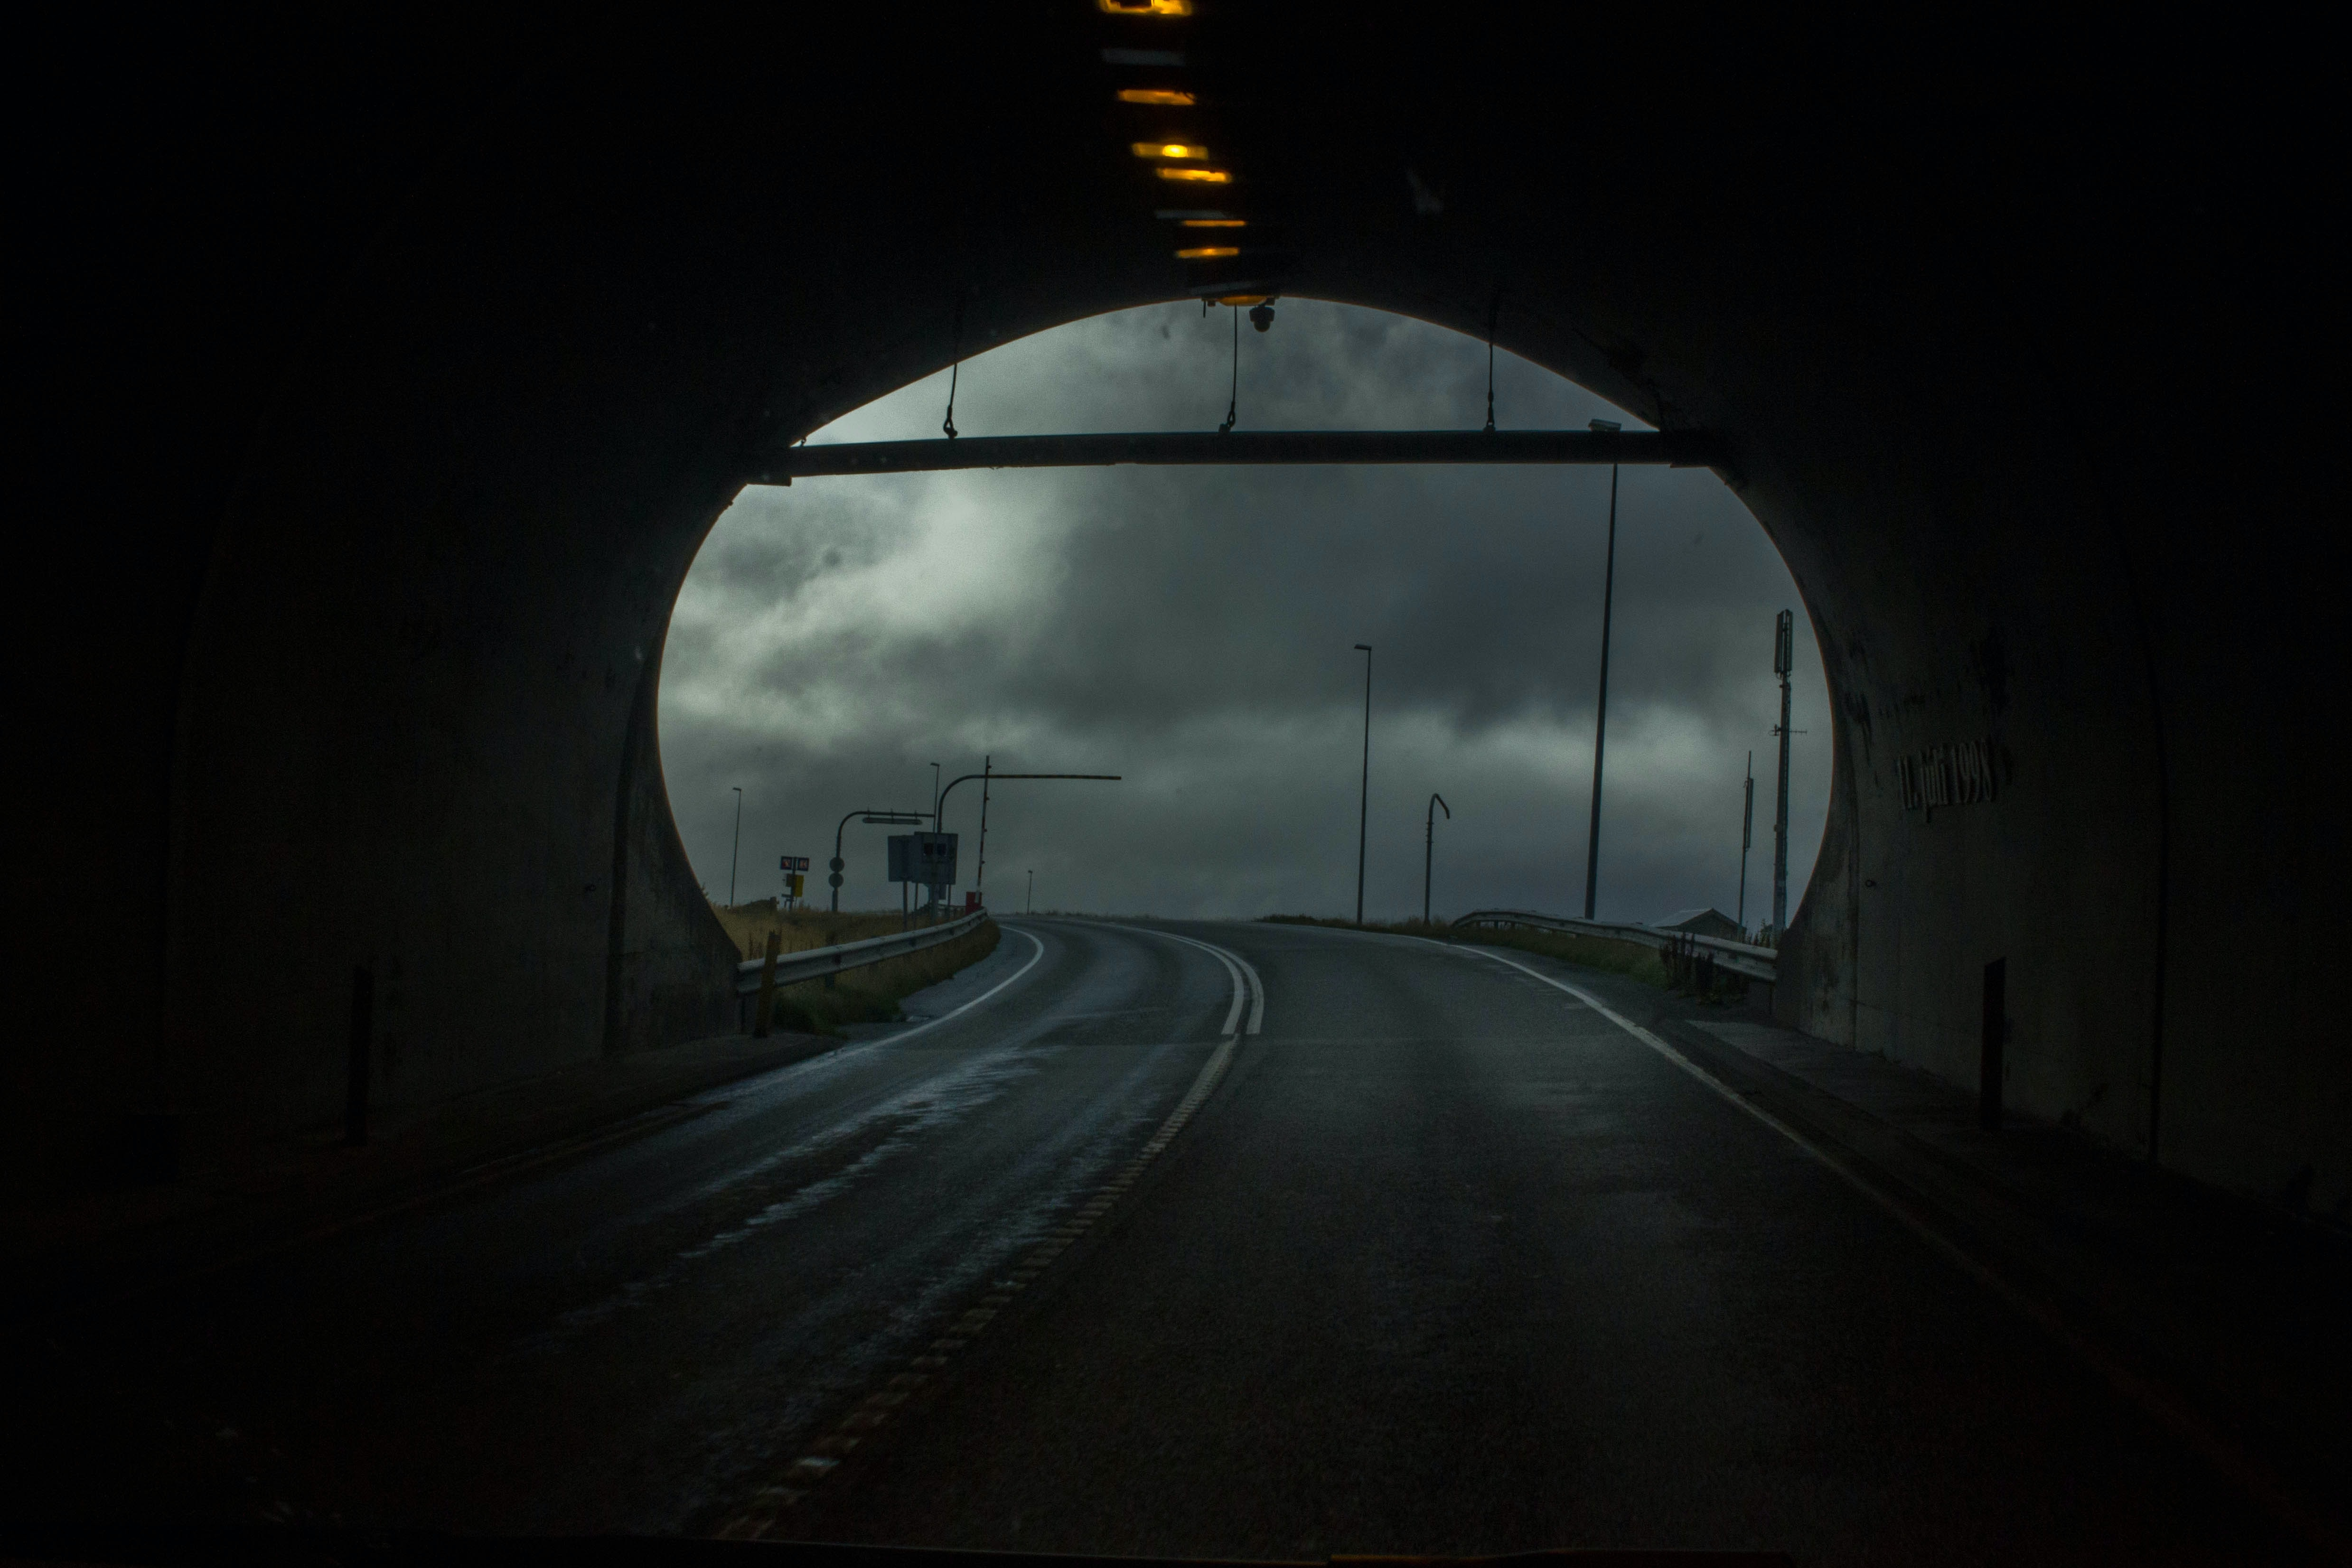 photo of empty pavement inside tunnel